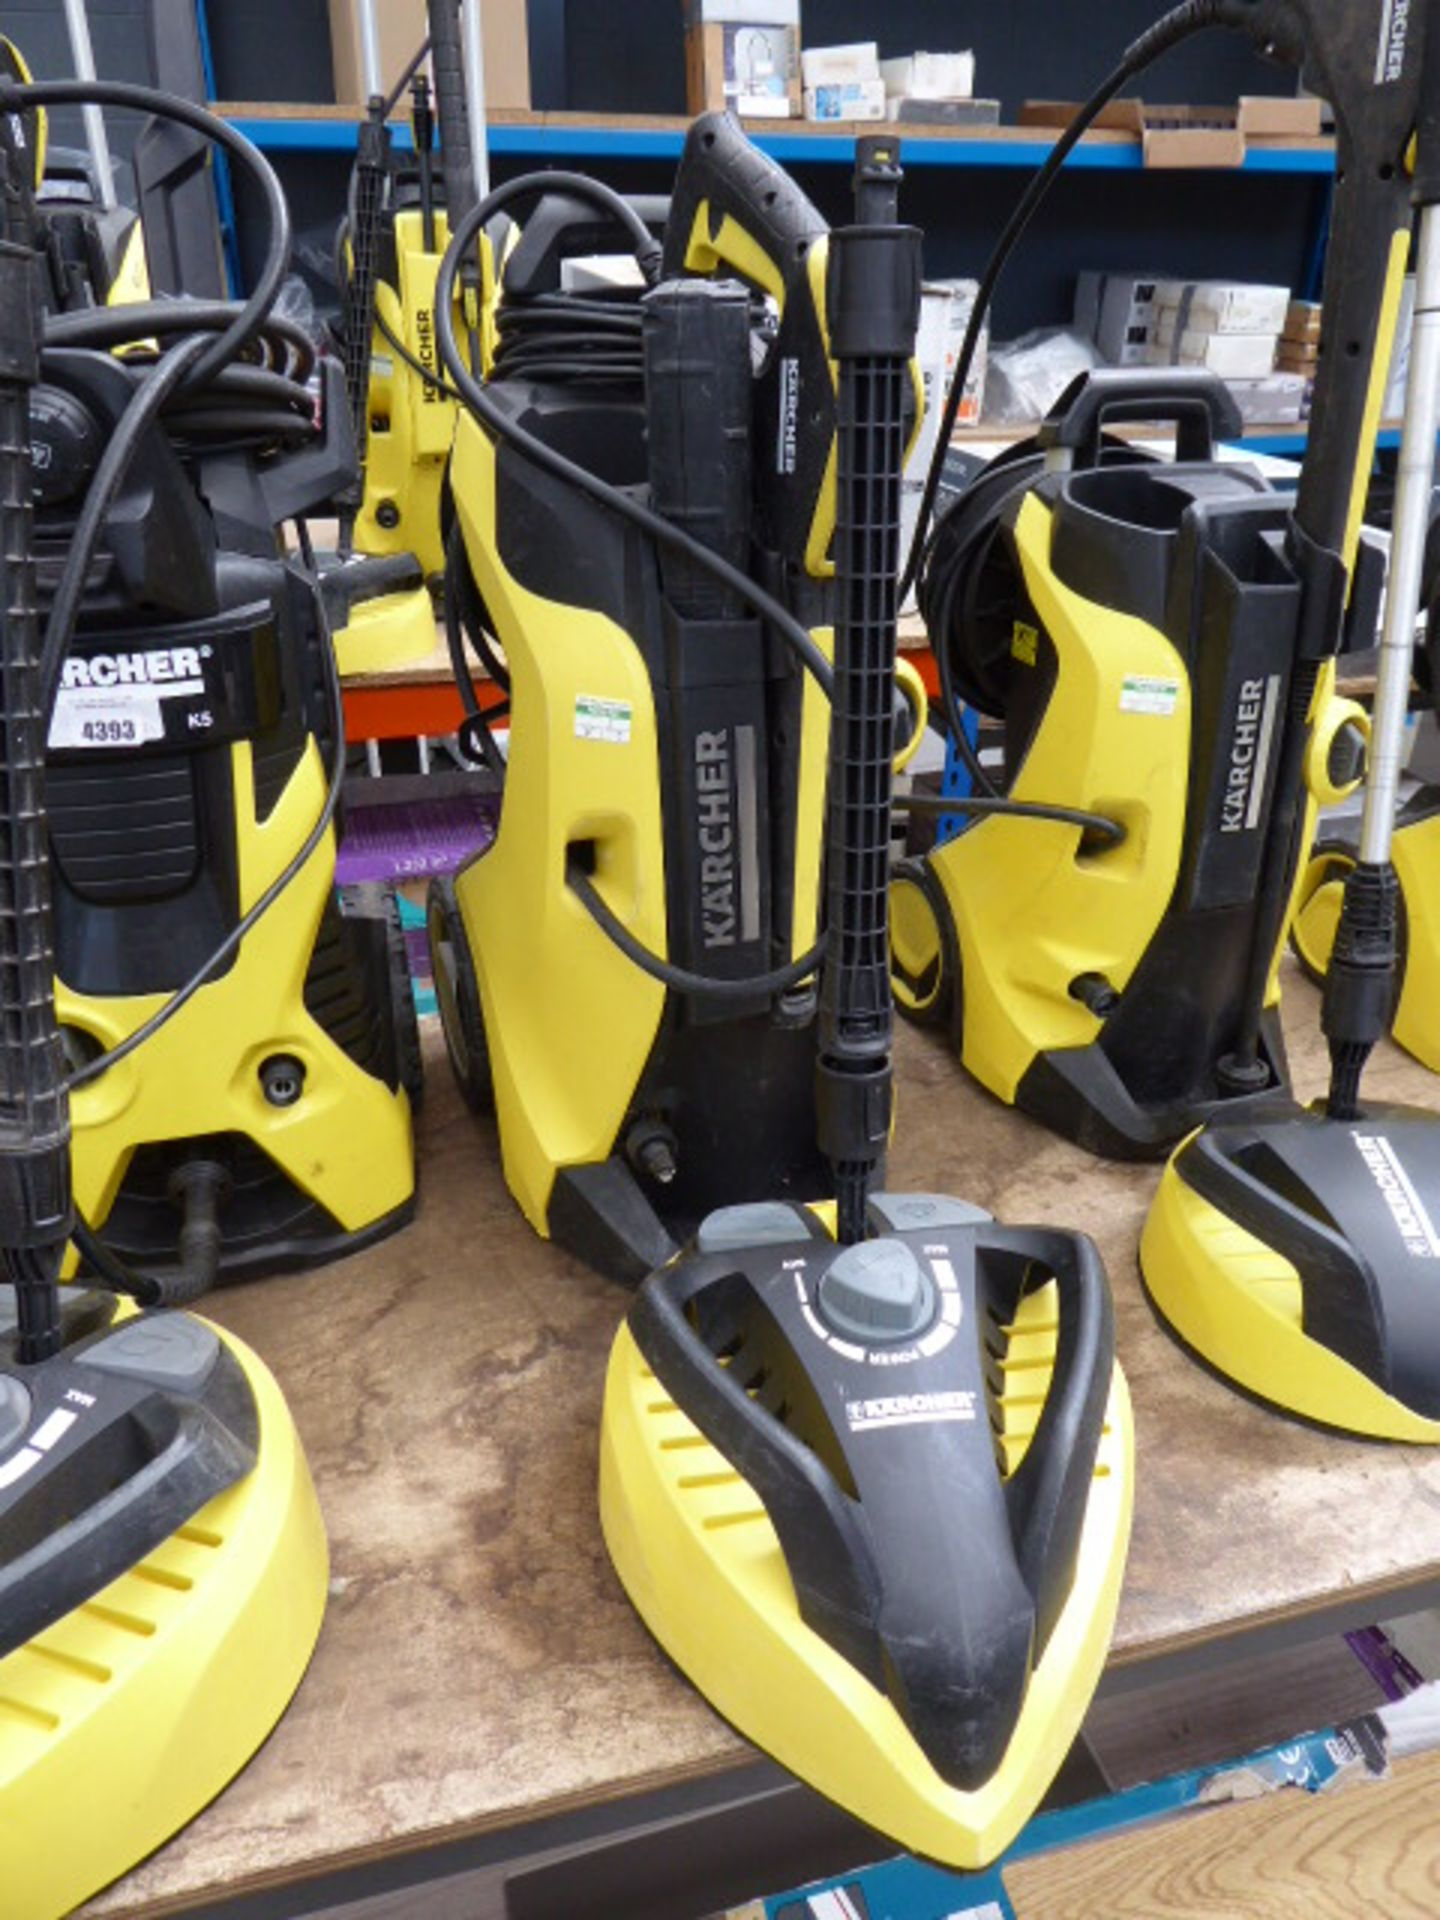 Lot 4394 - Karcher K7 premium 4 electric pressure washer with patio cleaning head